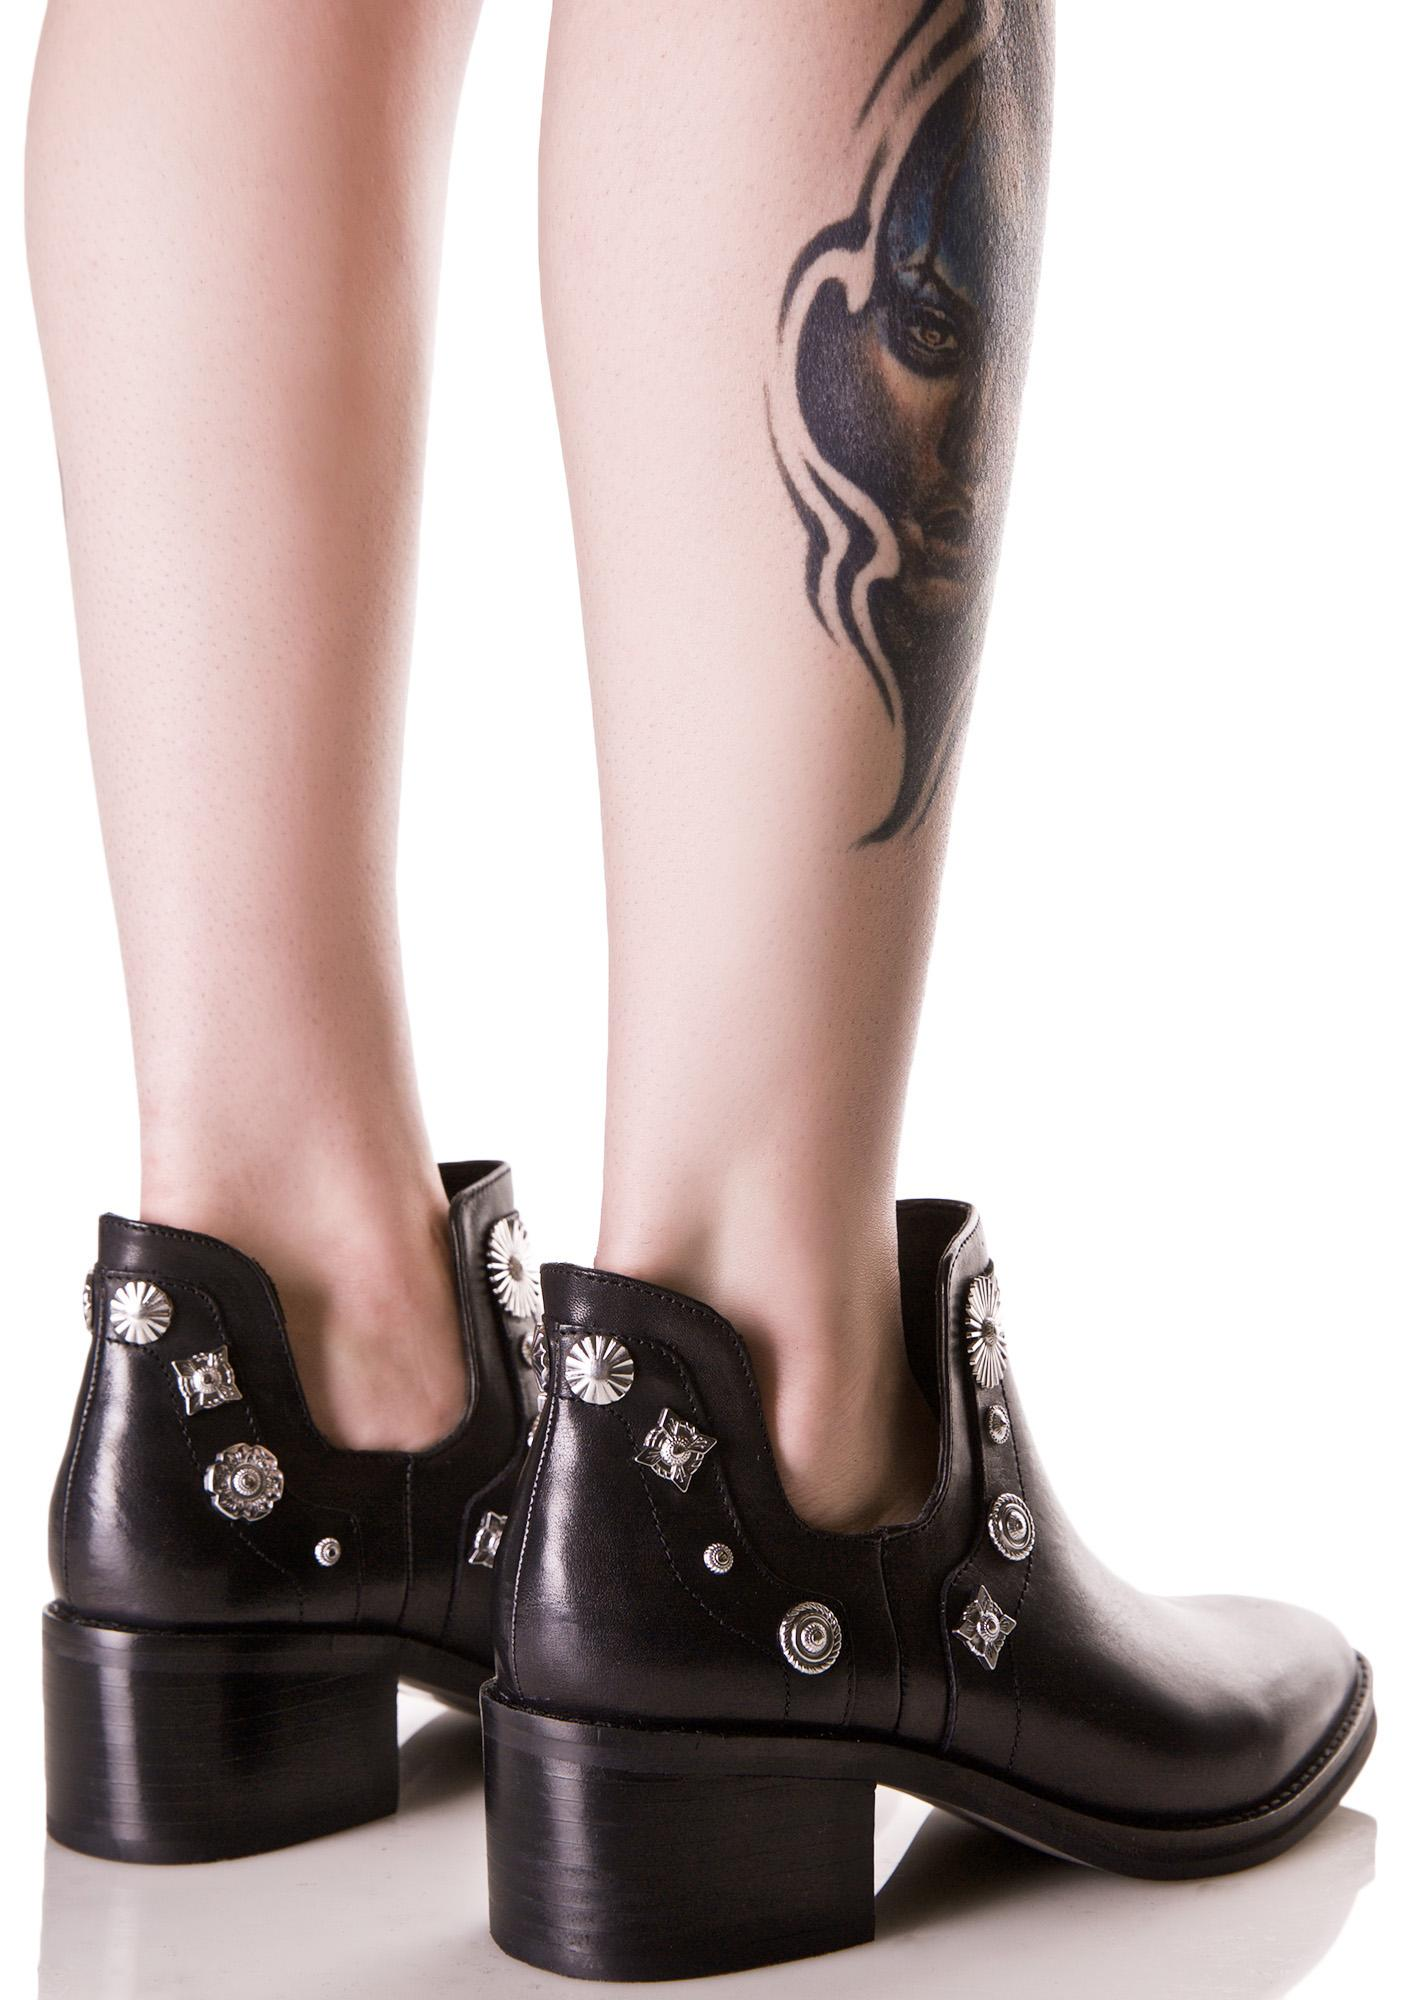 E8 by Miista Octavia Ankle Boots